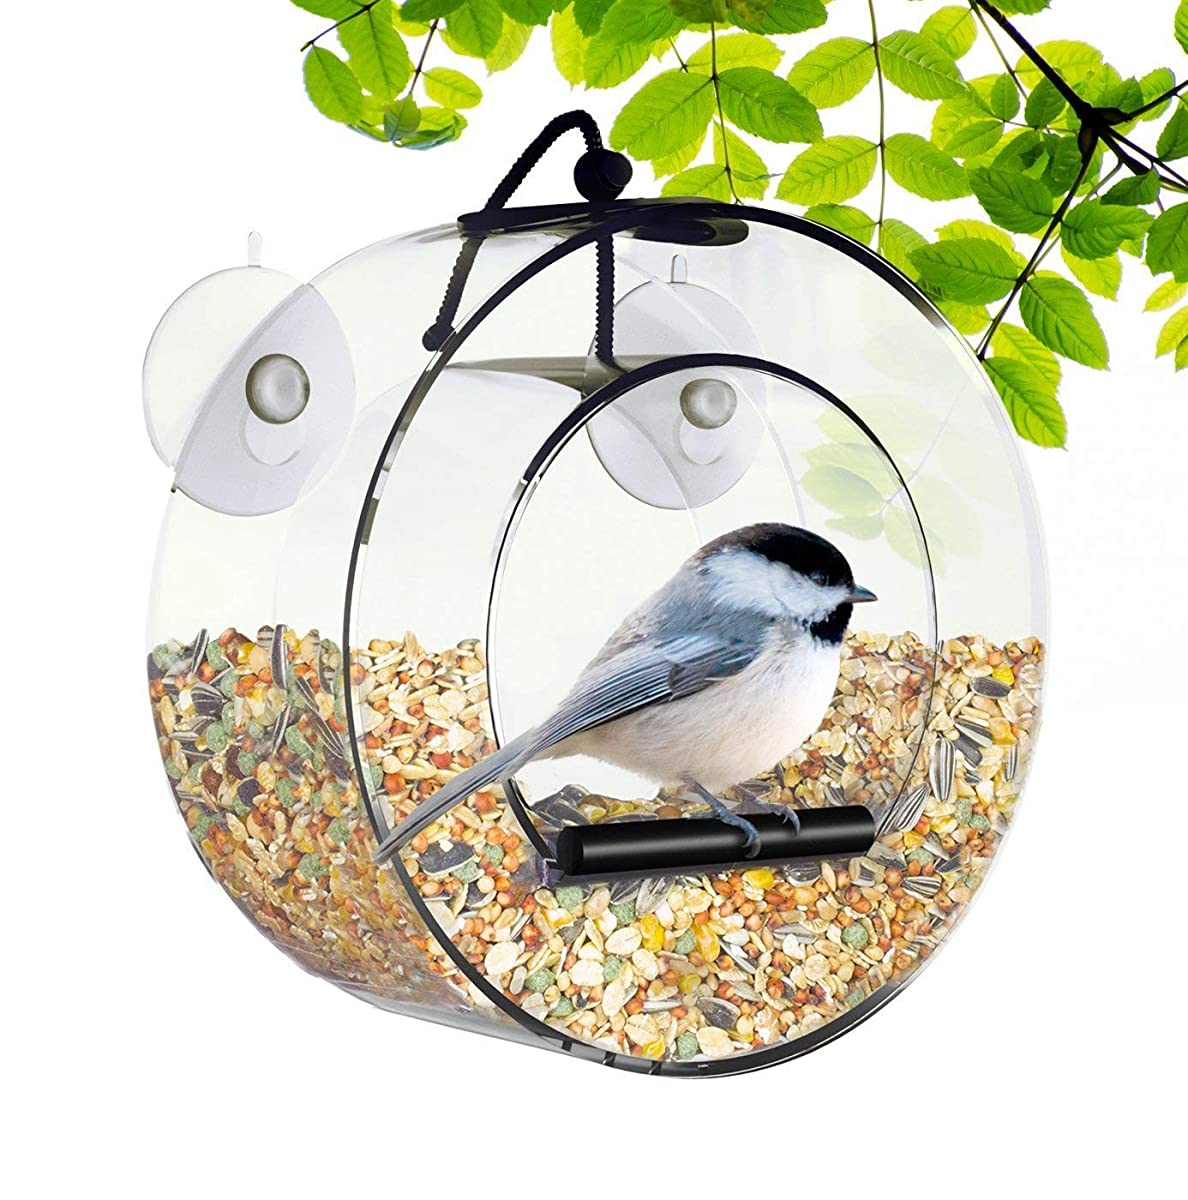 BirdMaster Window Bird Feeder - Acrylic Circular Design - Strong Suction Cups - Drain Holes - Squirrel Proof - Easy to Install & Clean – Outdoor for All Small Wild Birds [Gift-Ready Packaging]